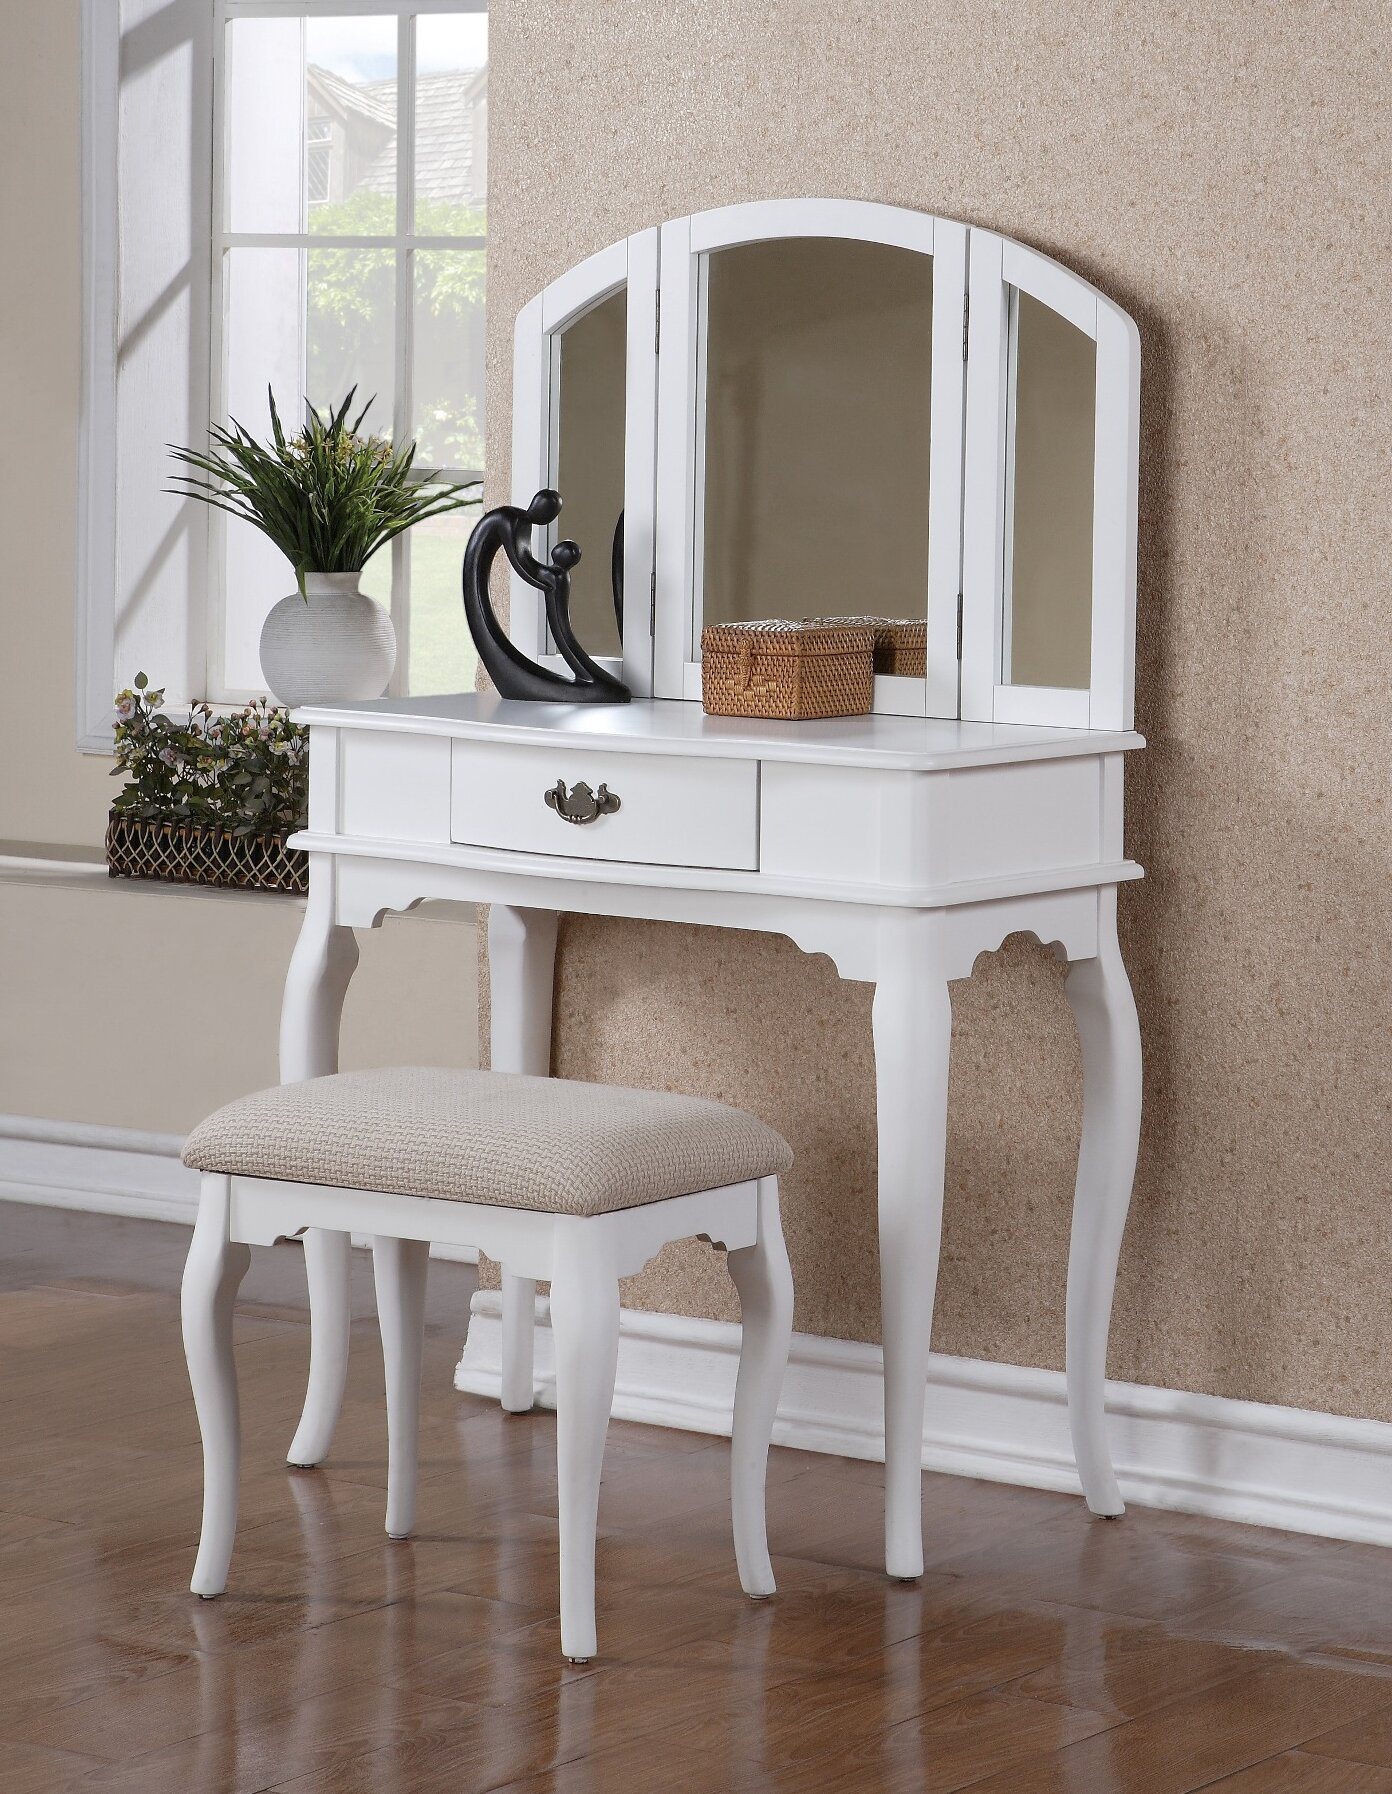 white vanity set table stool chair cosmetic makeup dresser